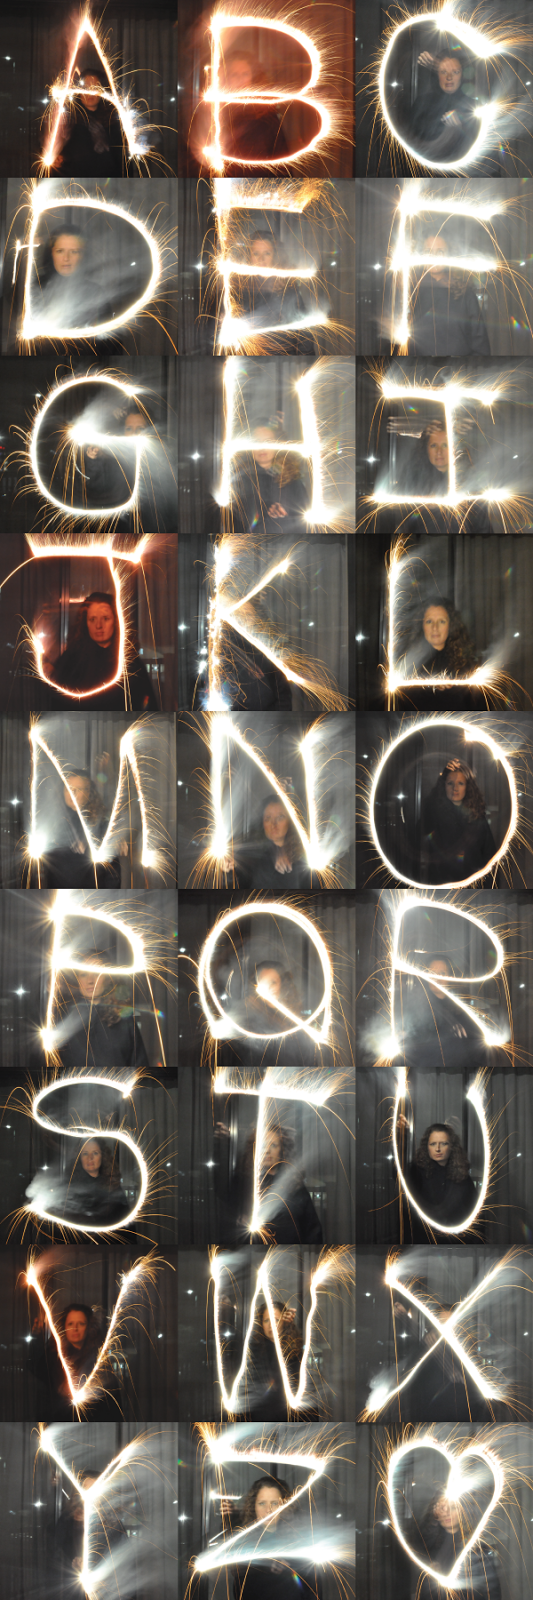 a sparkler photography tutorial: how to write with sparklers + catch it on camera!